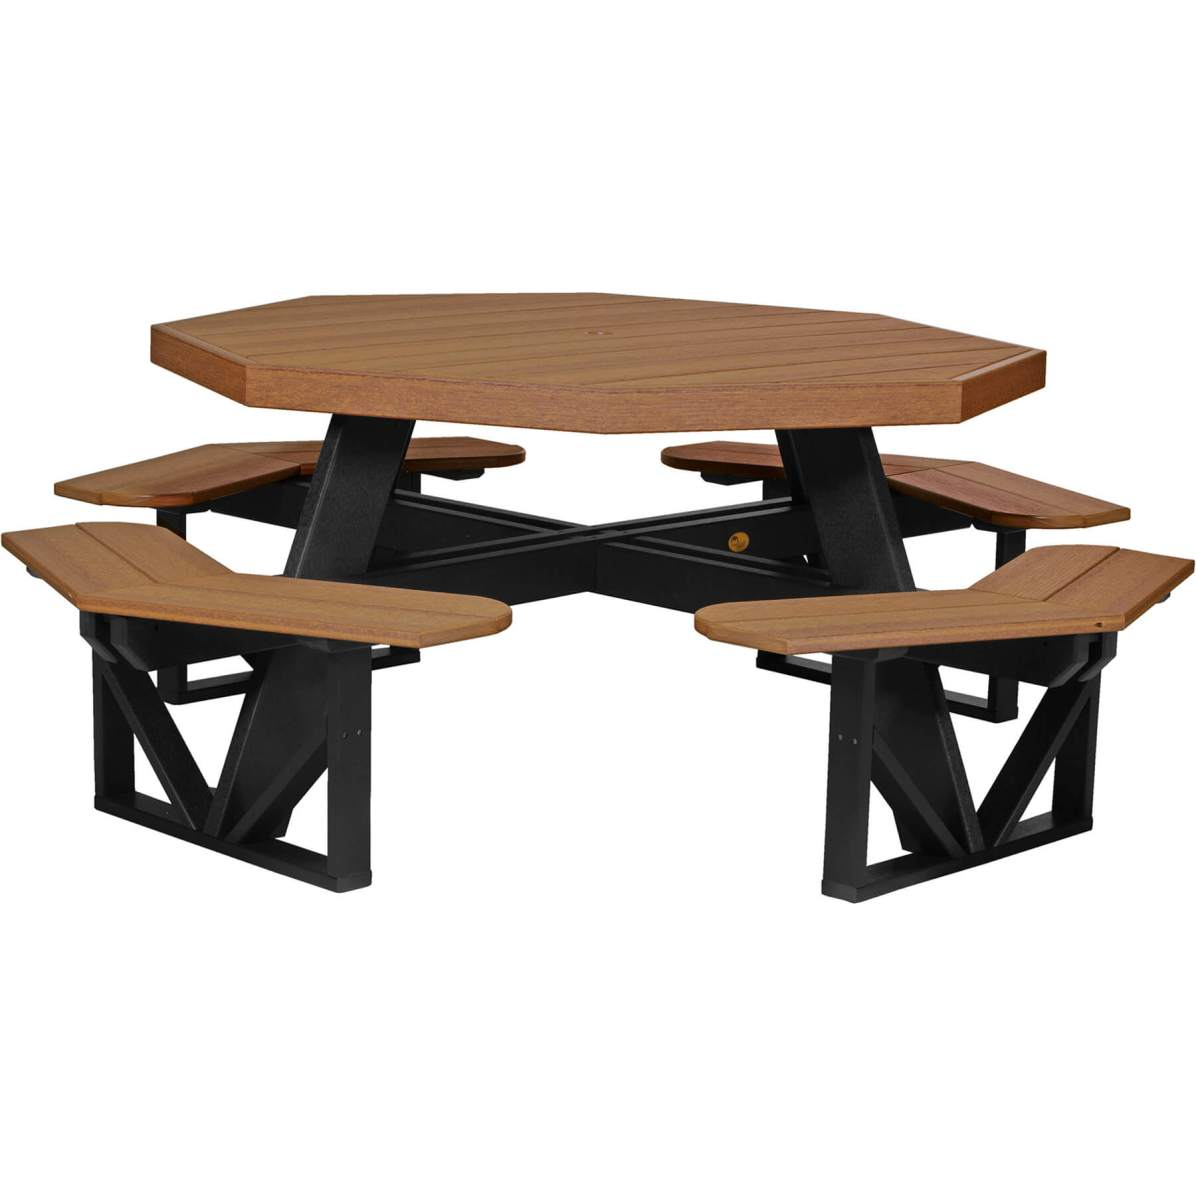 POPTAMB Poly Octagon Picnic Table (Antique Mahogany & Black)